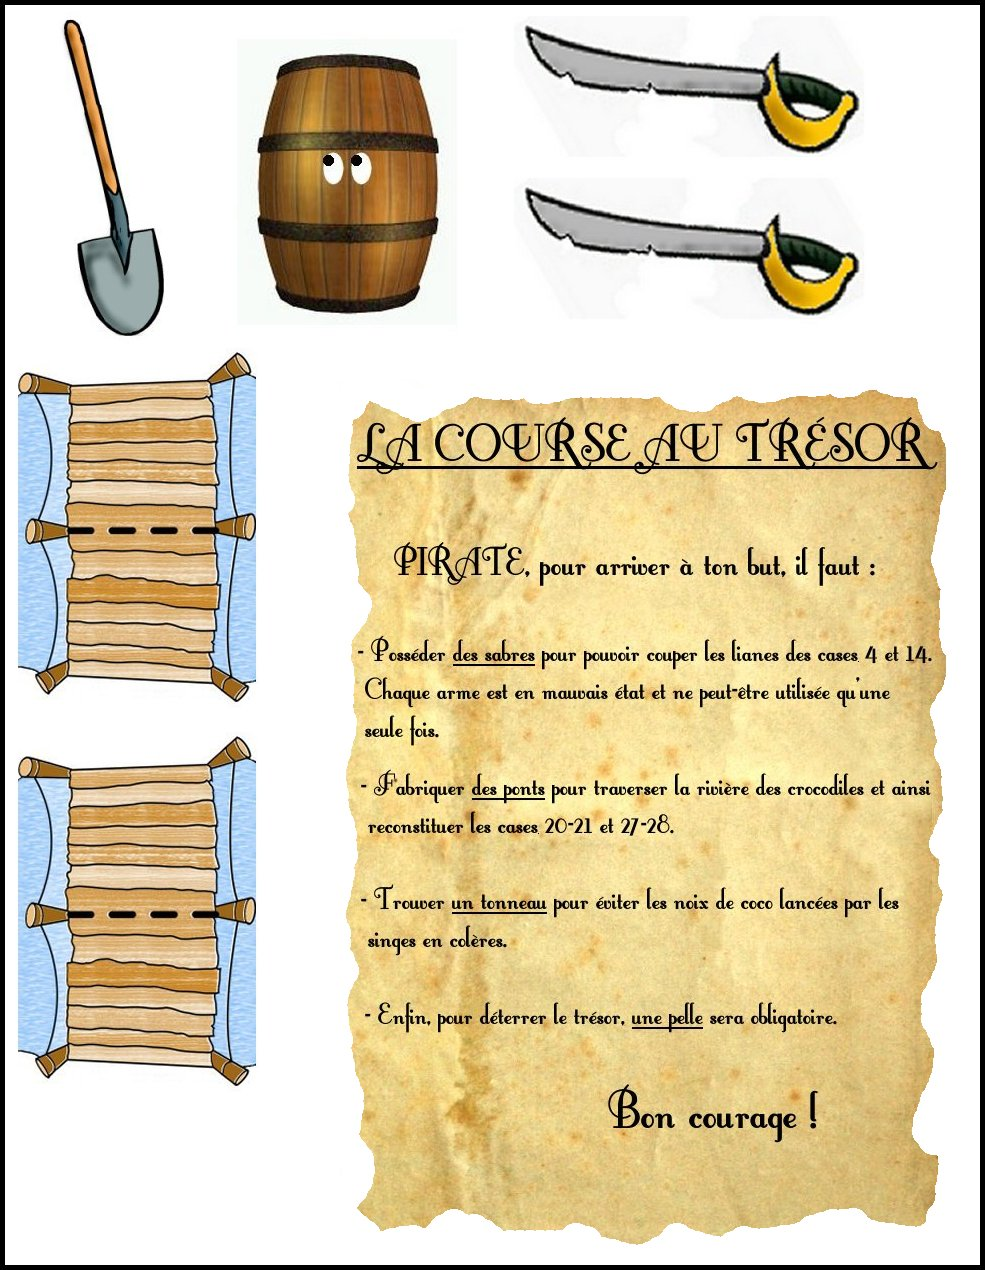 - Idee d enigme pour chasse au tresor ...